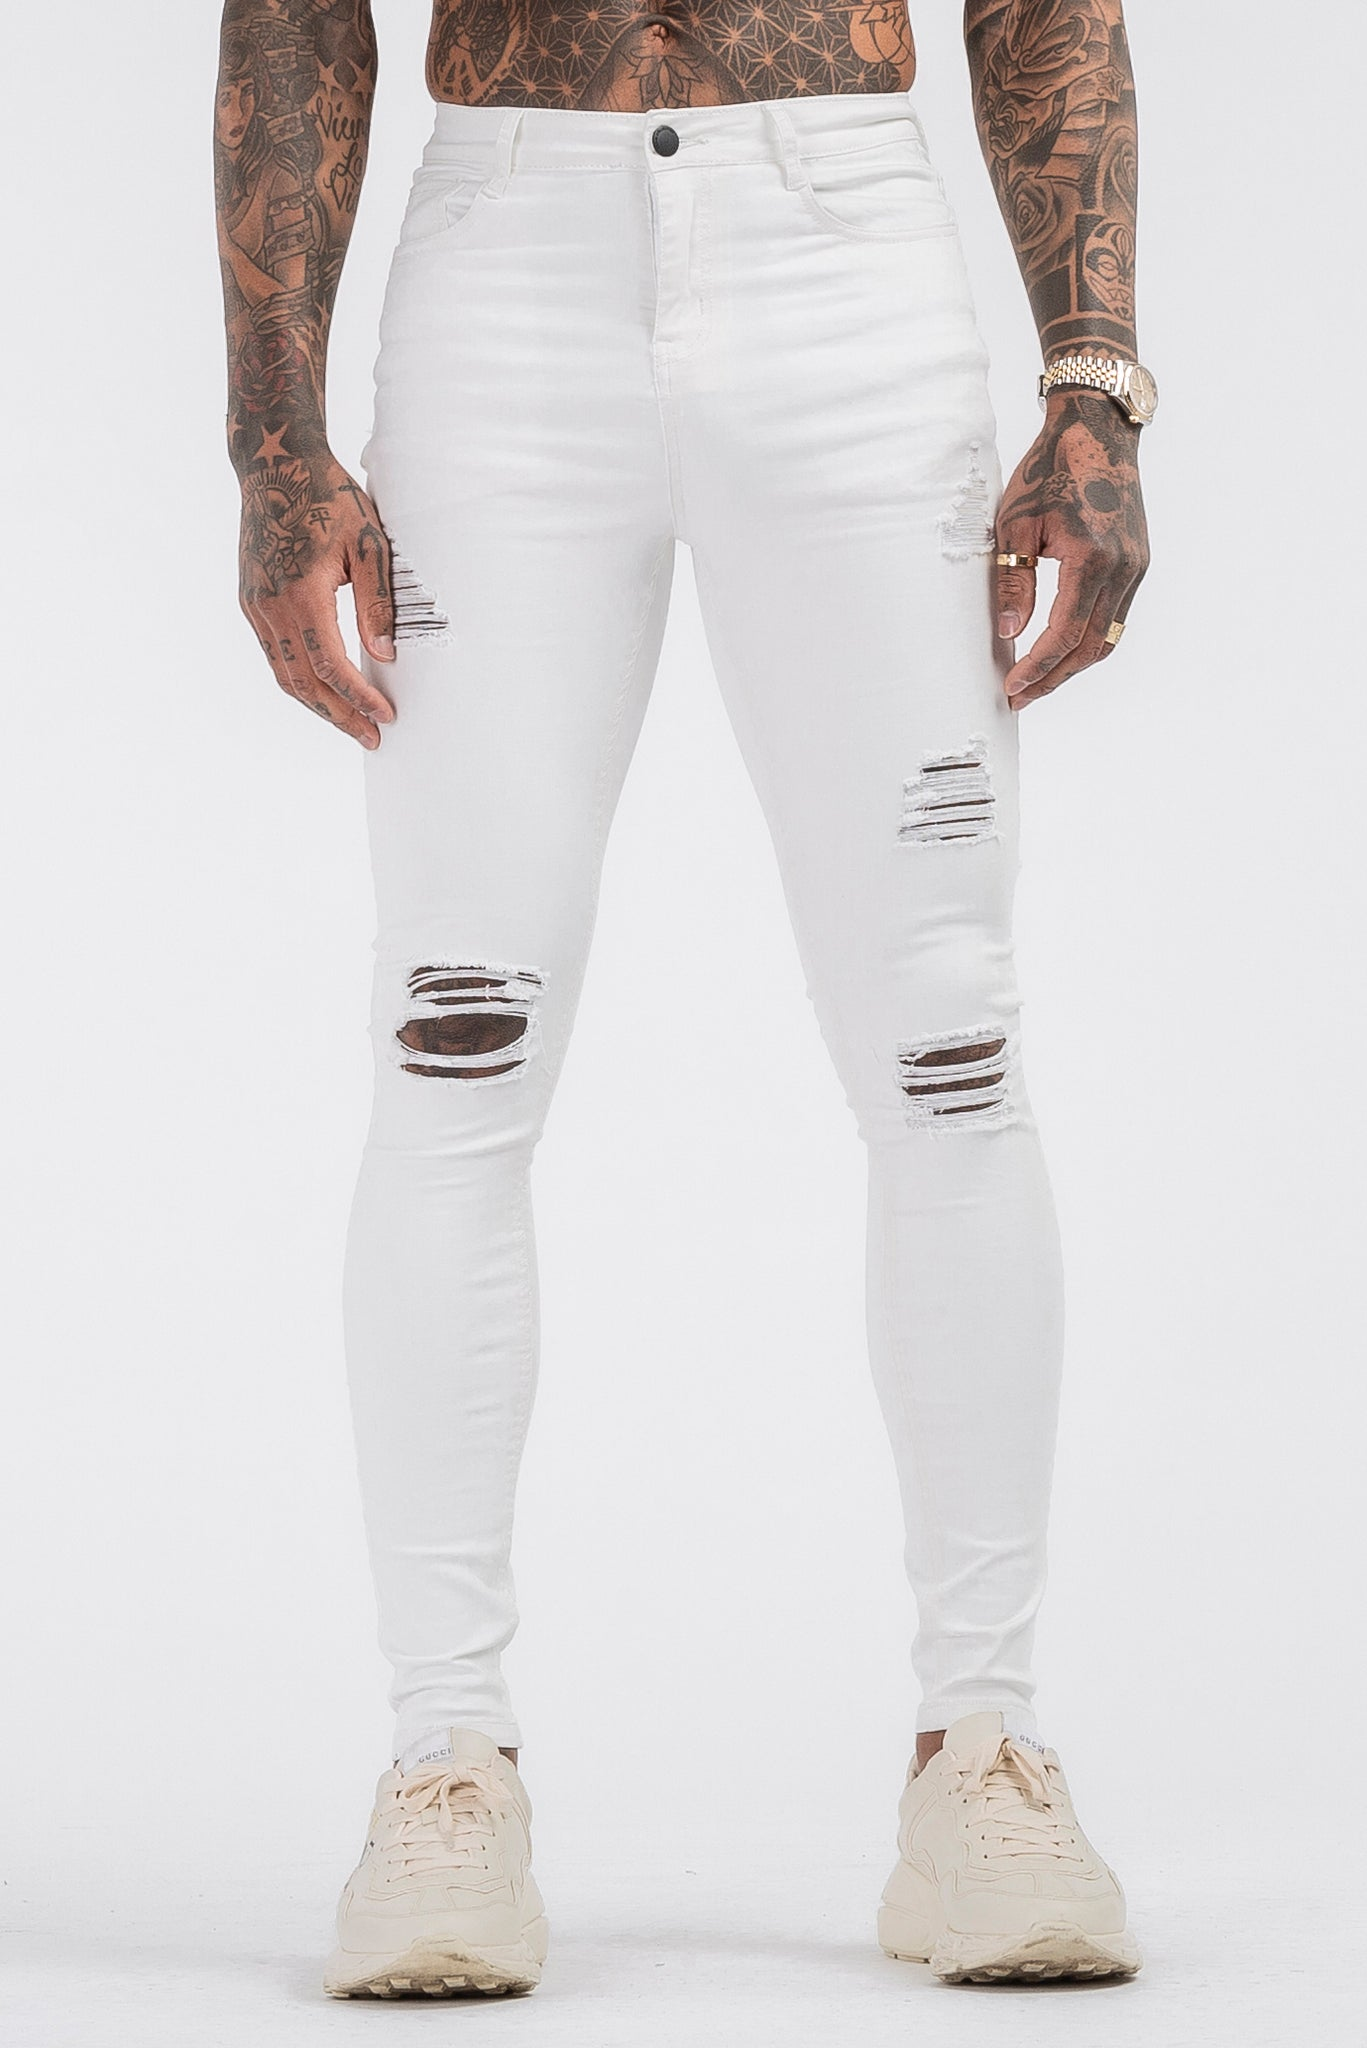 THE SAVAGE JEANS - WHITE - ICON. AMSTERDAM